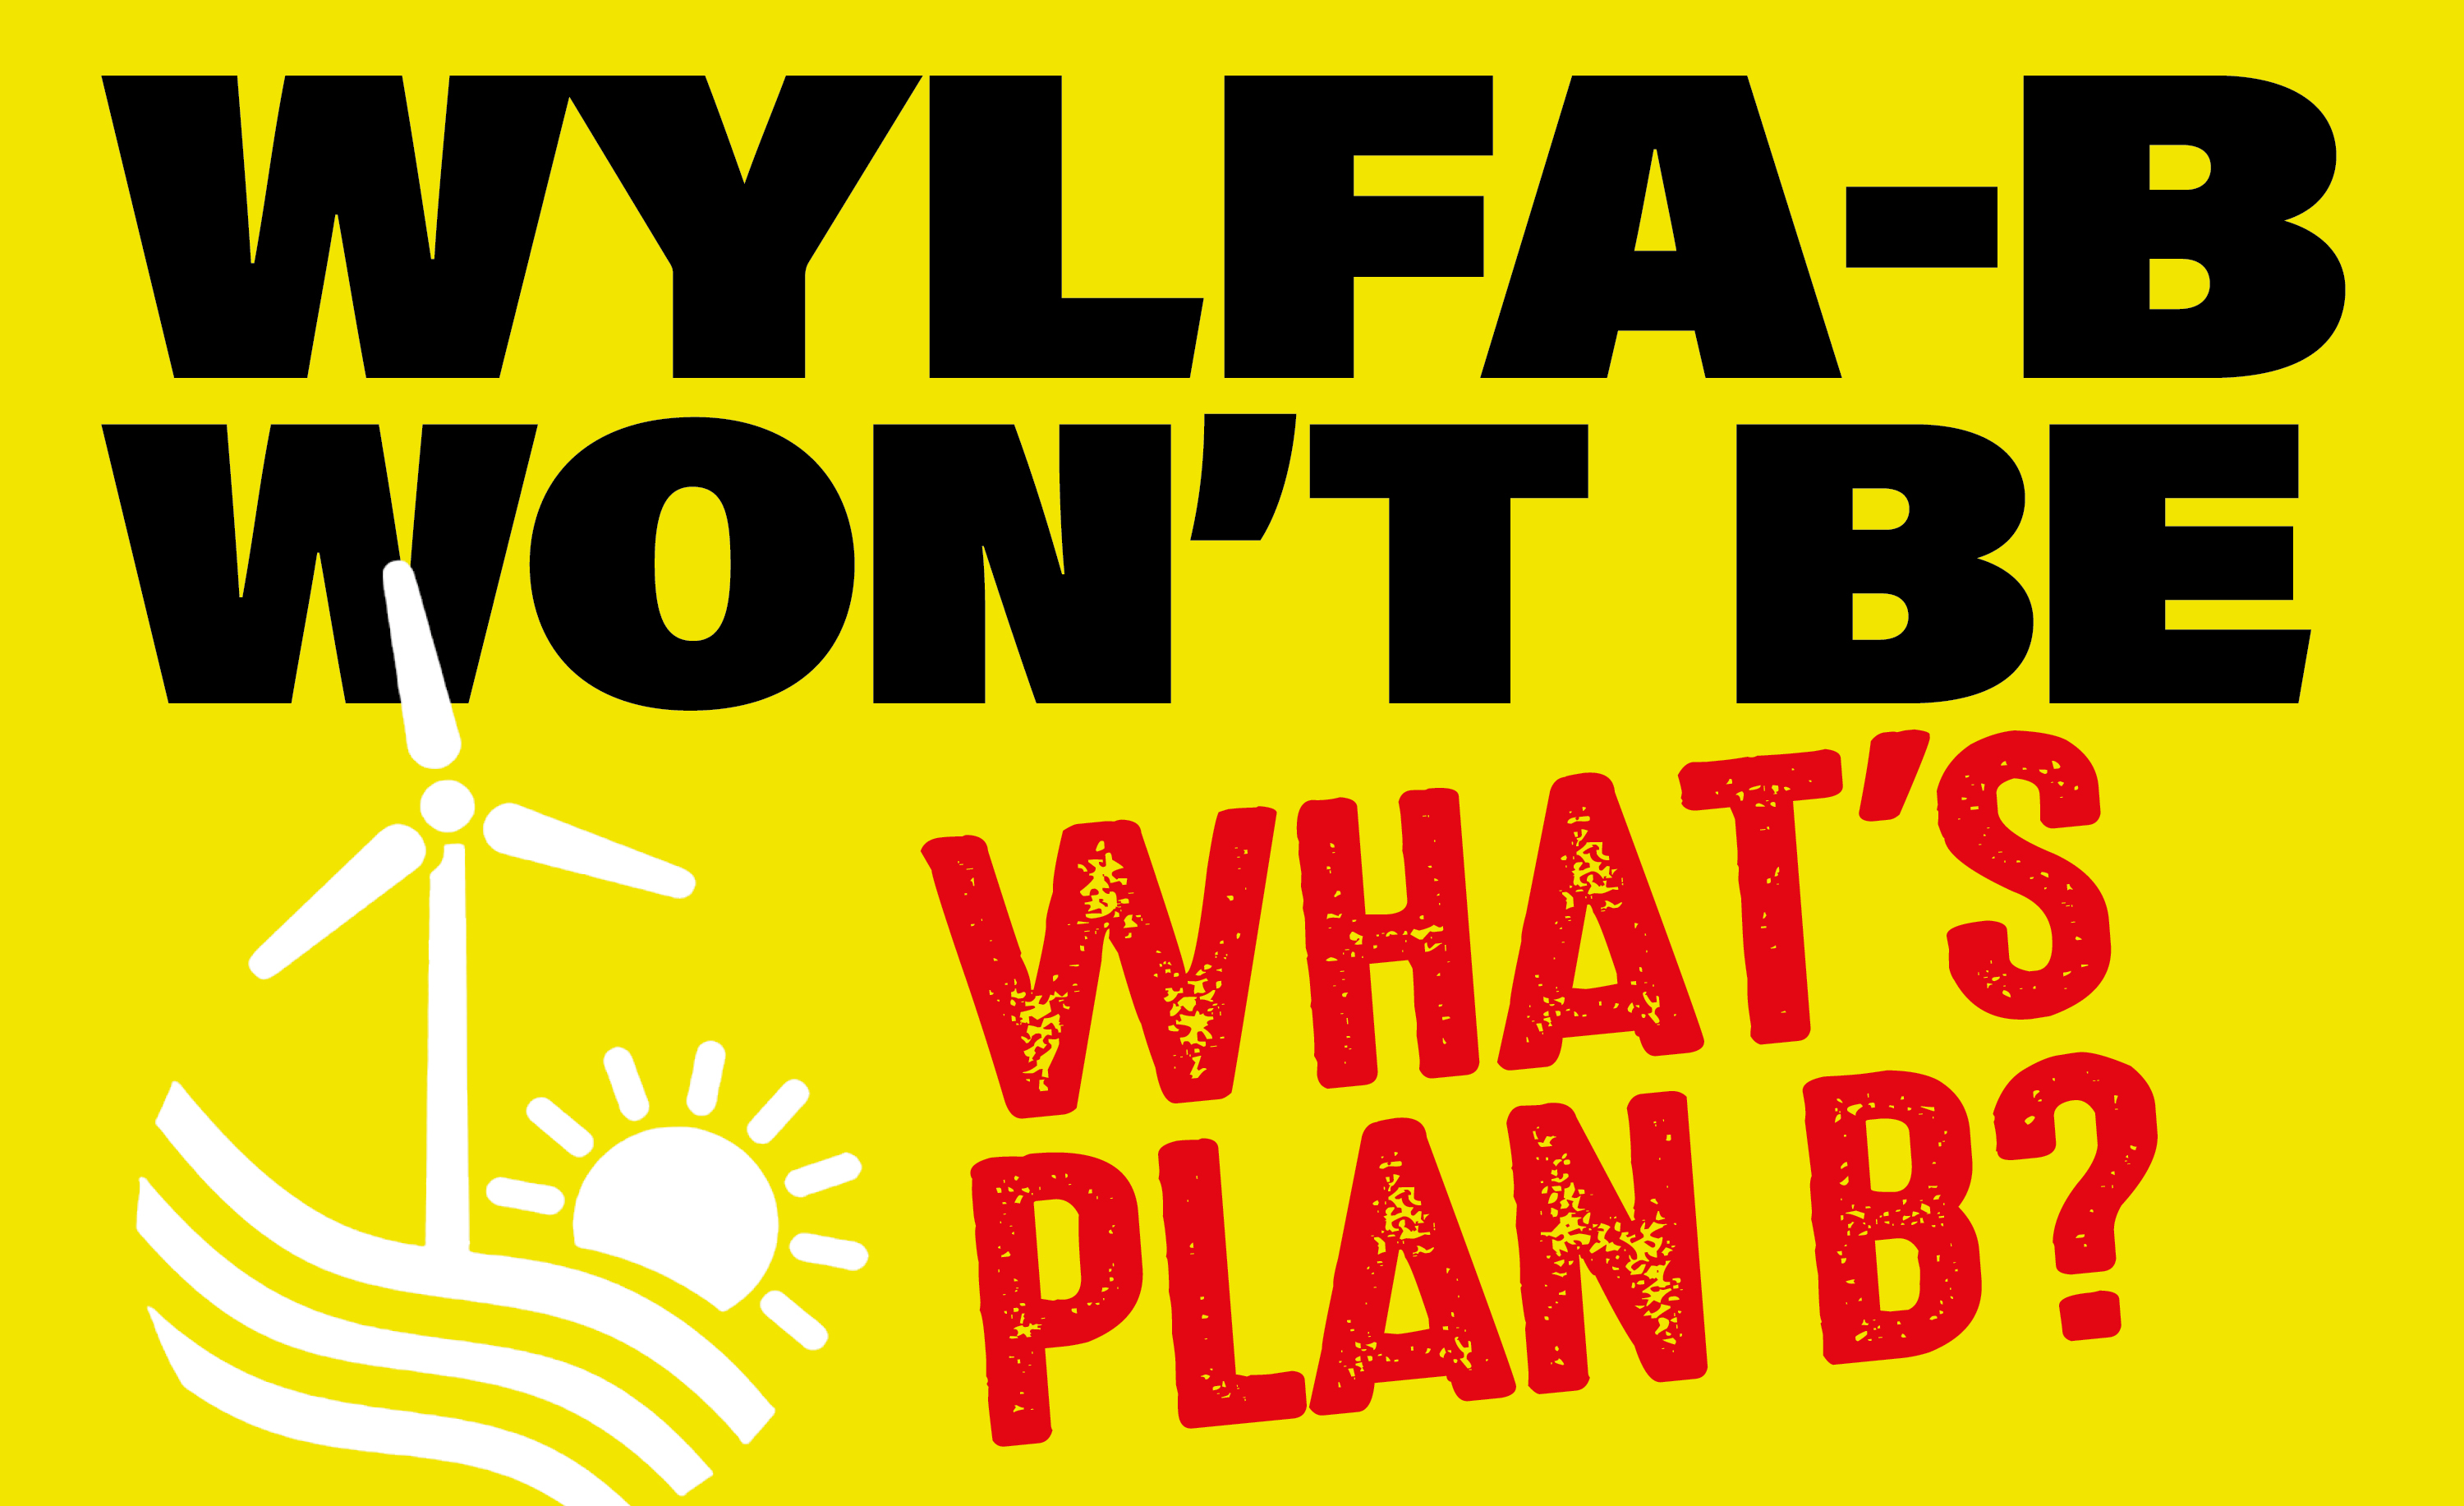 Wylfa B Won't be